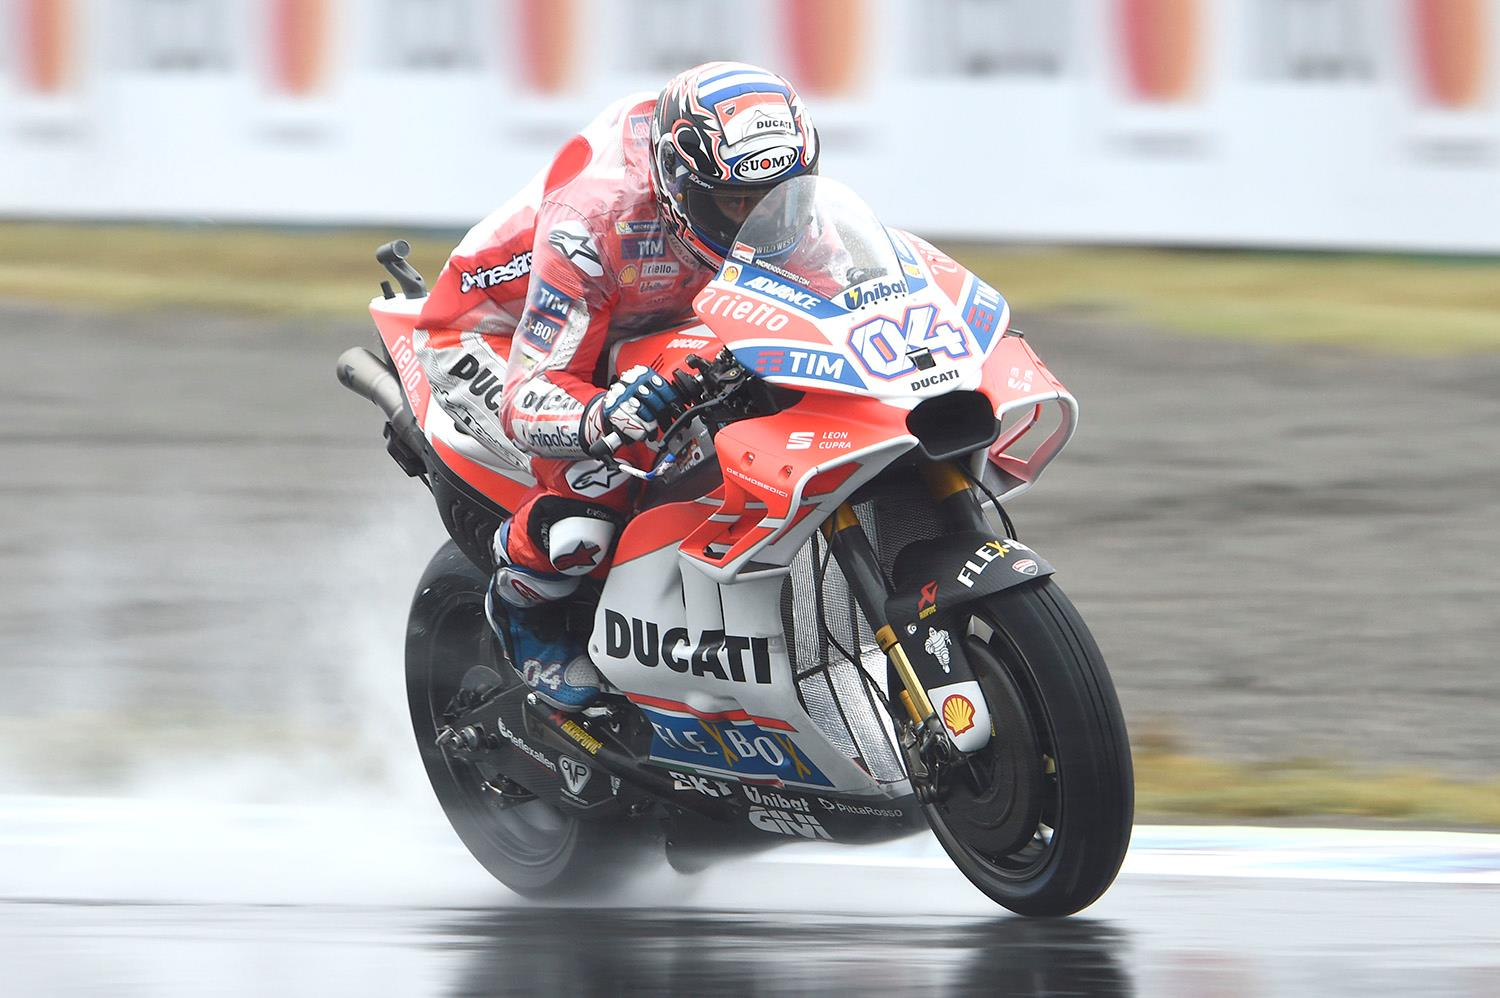 Ducati rider Dovizioso wins MotoGP Grand Prix of Japan